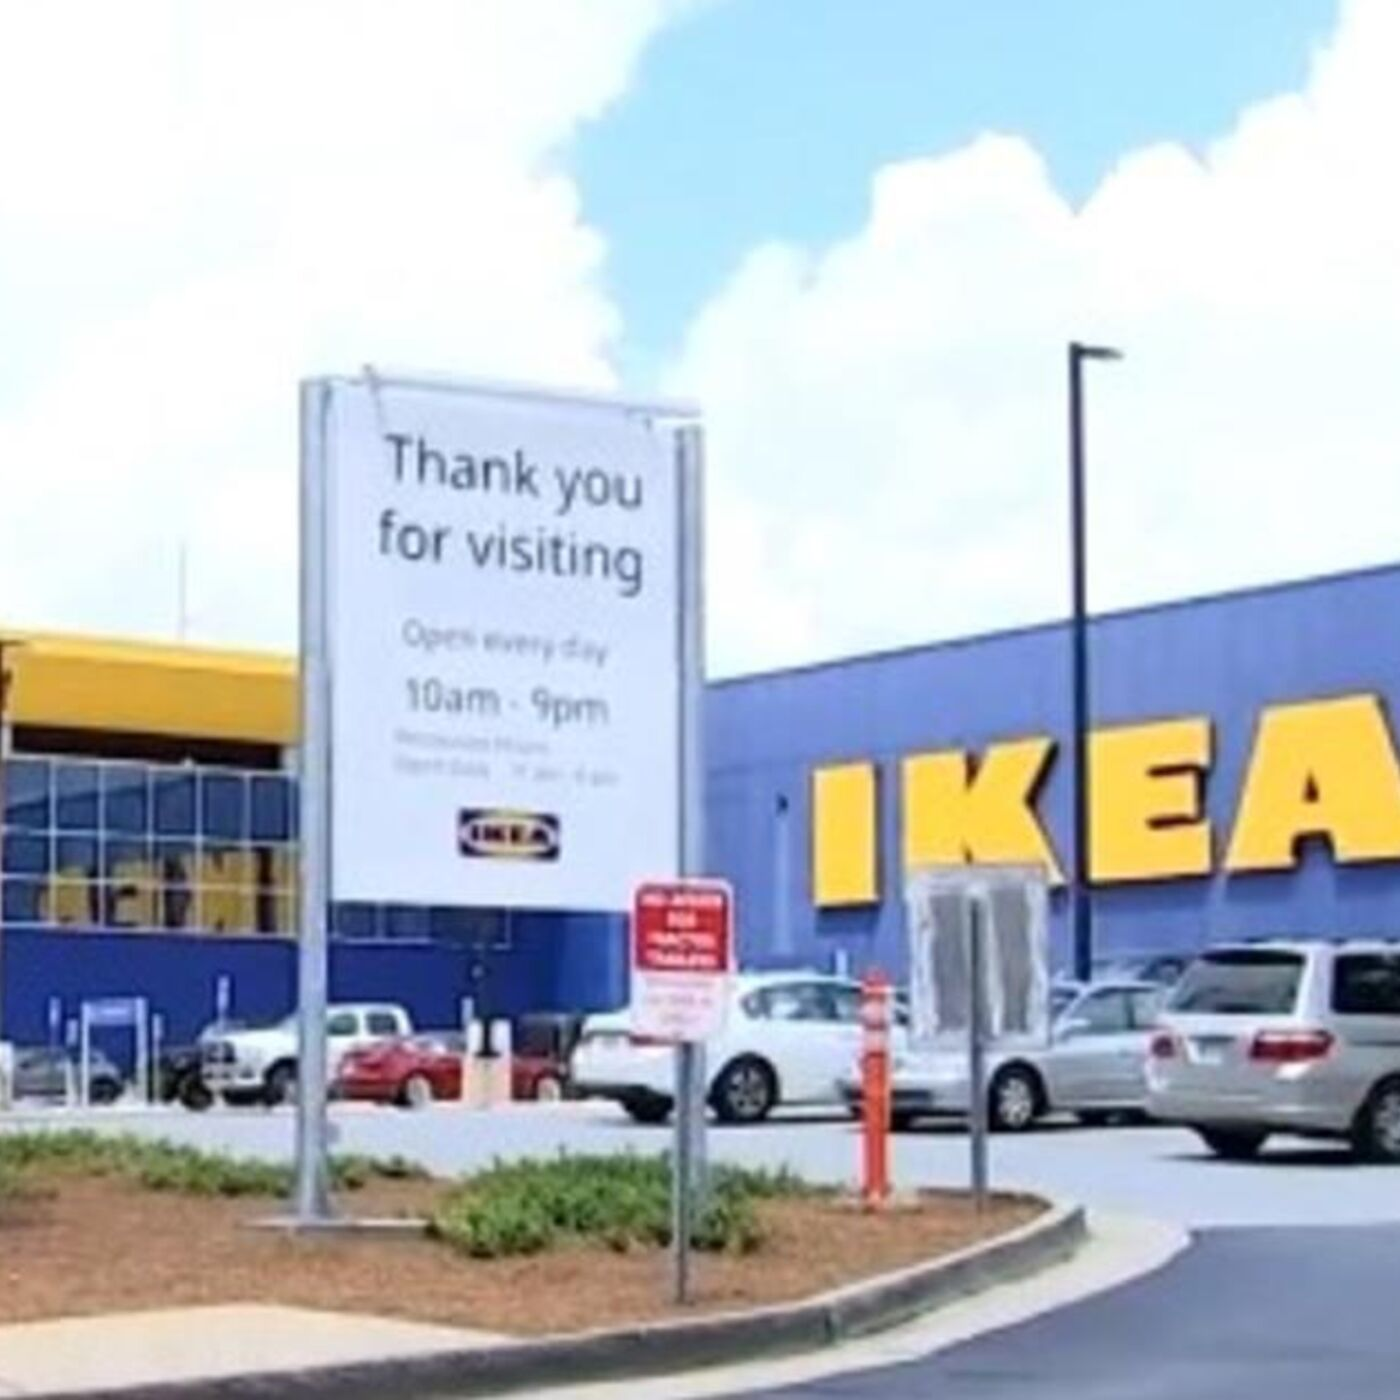 Ikea  picked all the stereotypical food for Juneteenth menu